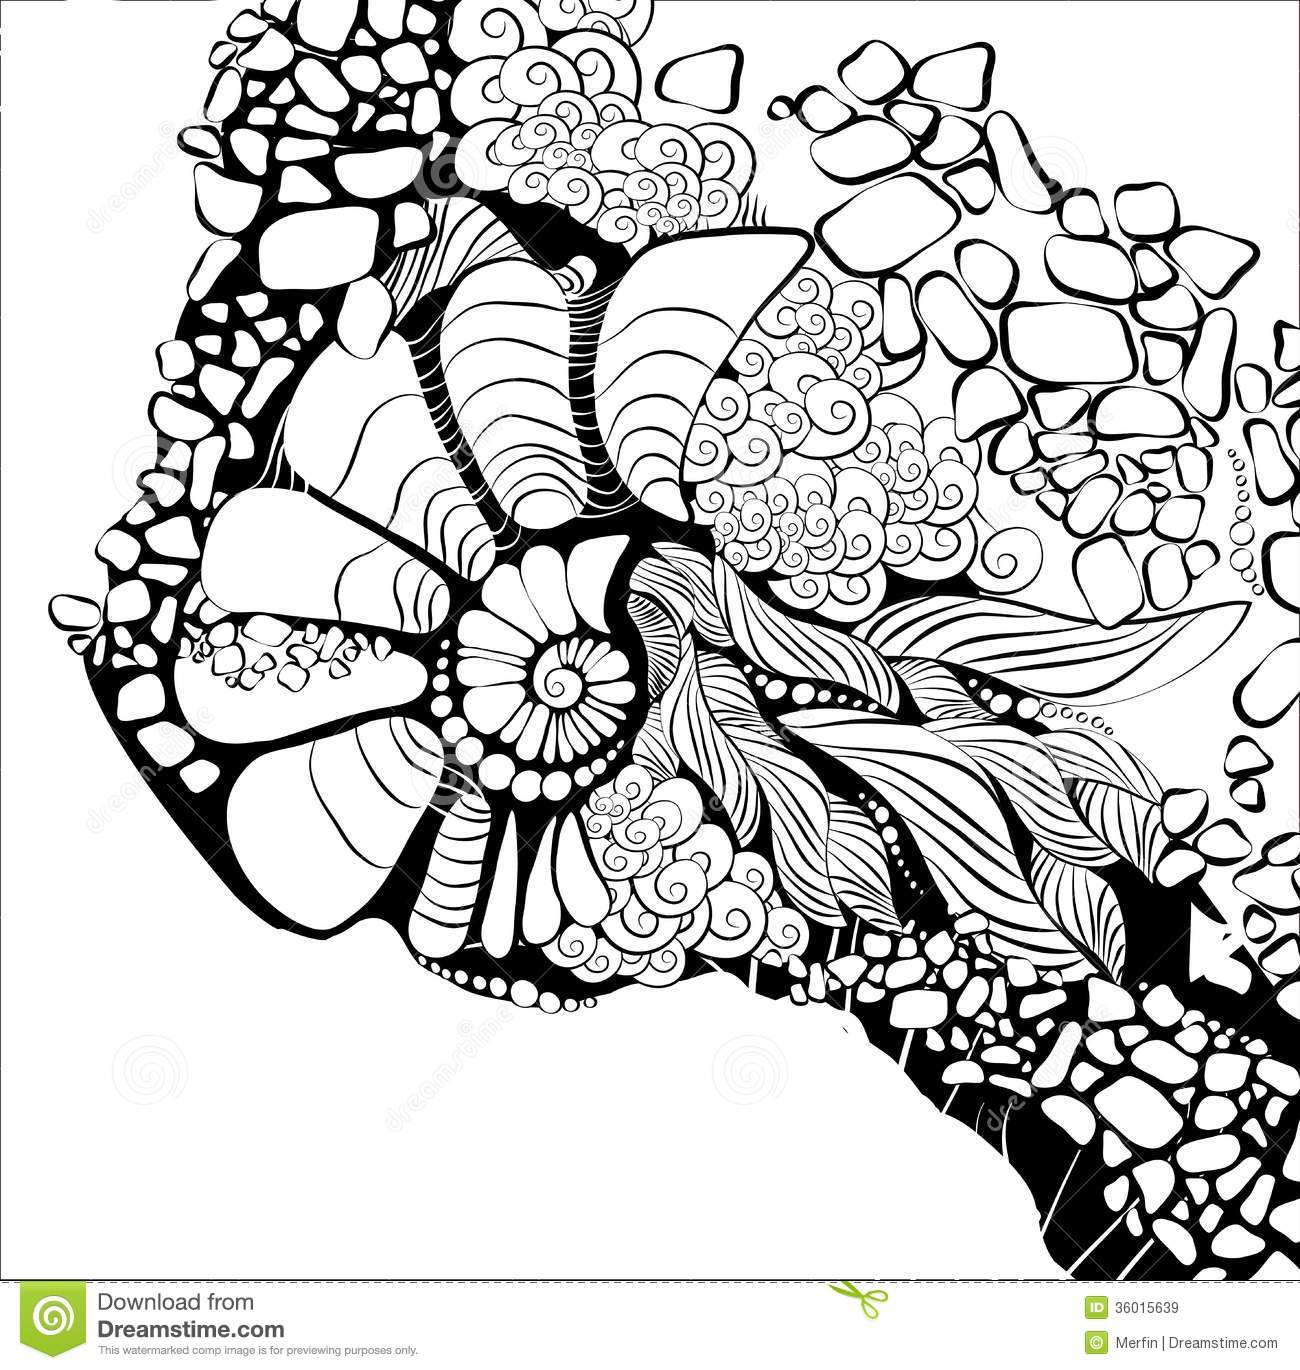 Xfig Line Drawing : Floral abstract background design template stock